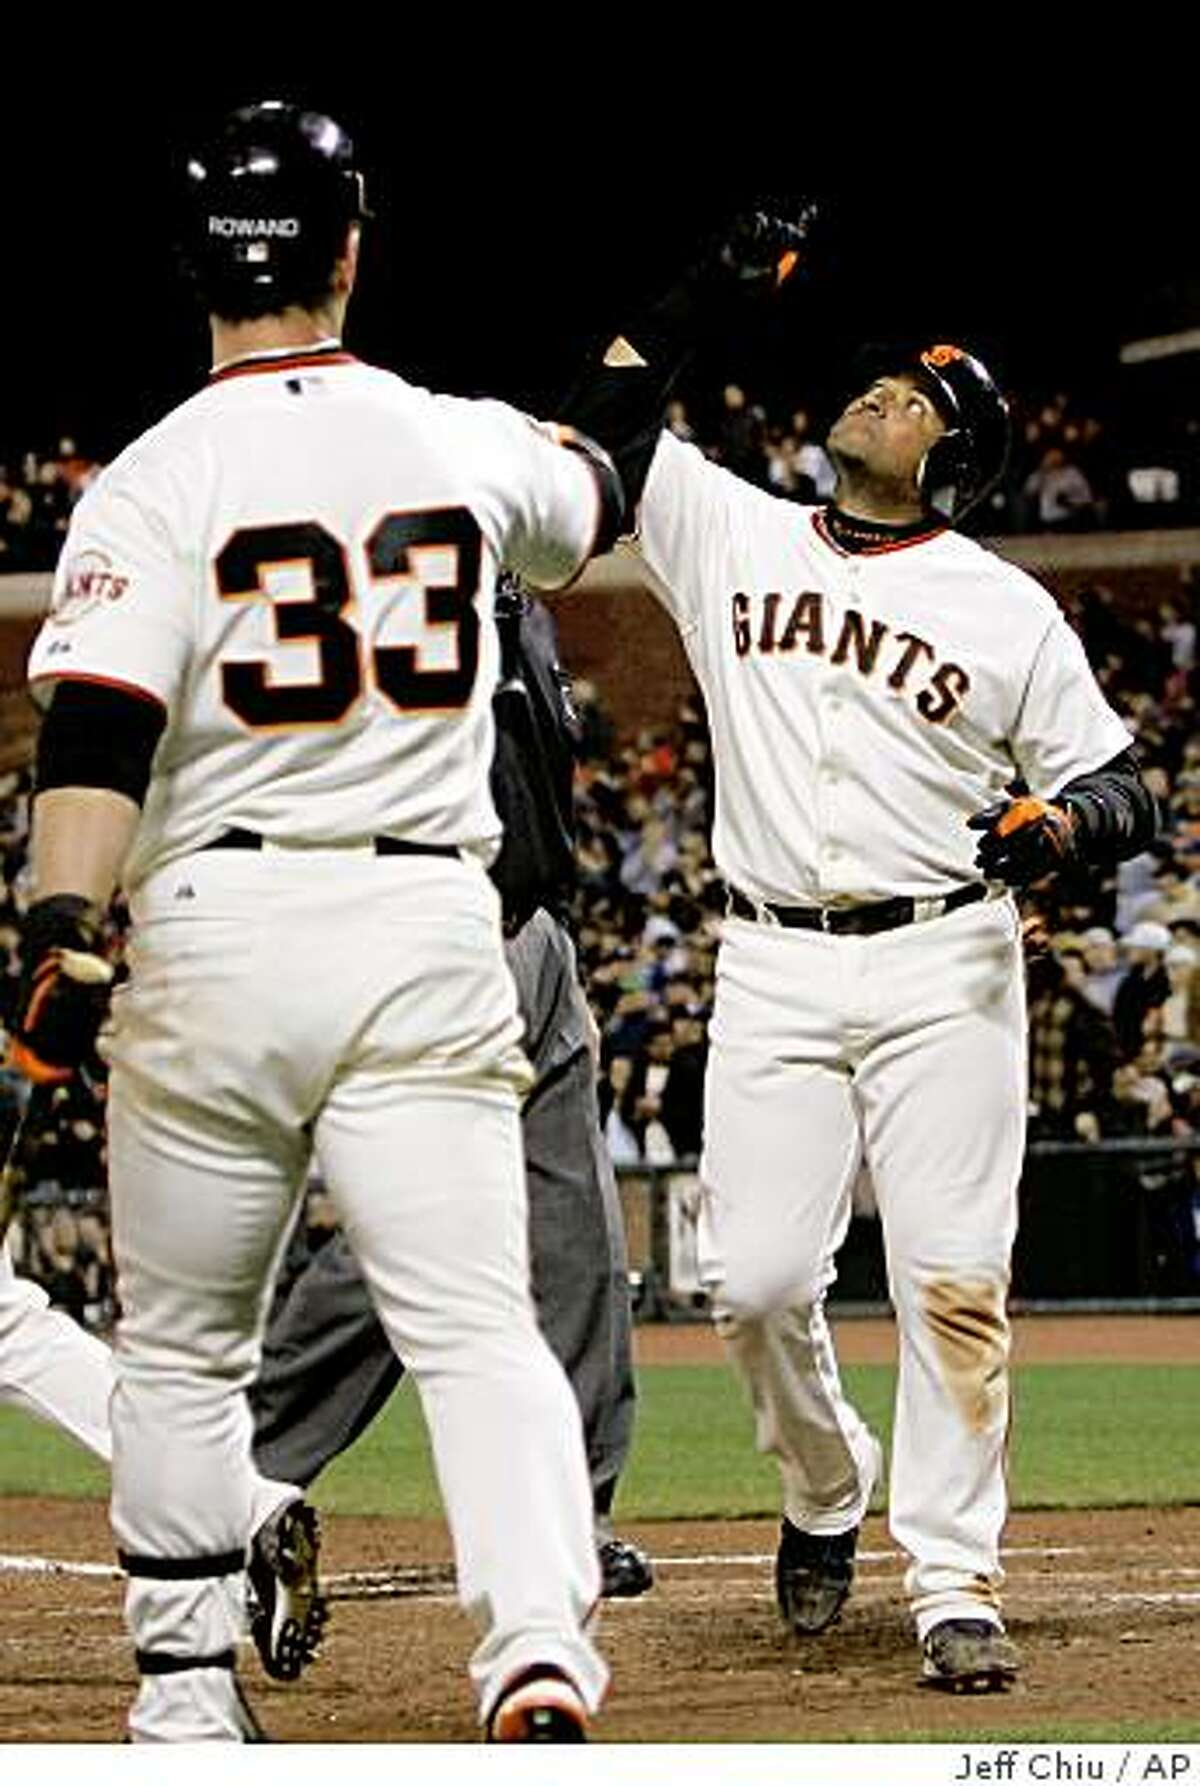 San Francisco Giants' Bengie Molina, right, celebrates after hitting a solo home run off of Los Angeles Dodgers' Scott Elbert in the seventh inning of a baseball game in San Francisco, Wednesday, April 29, 2009. At left is Giants' Aaron Rowand.